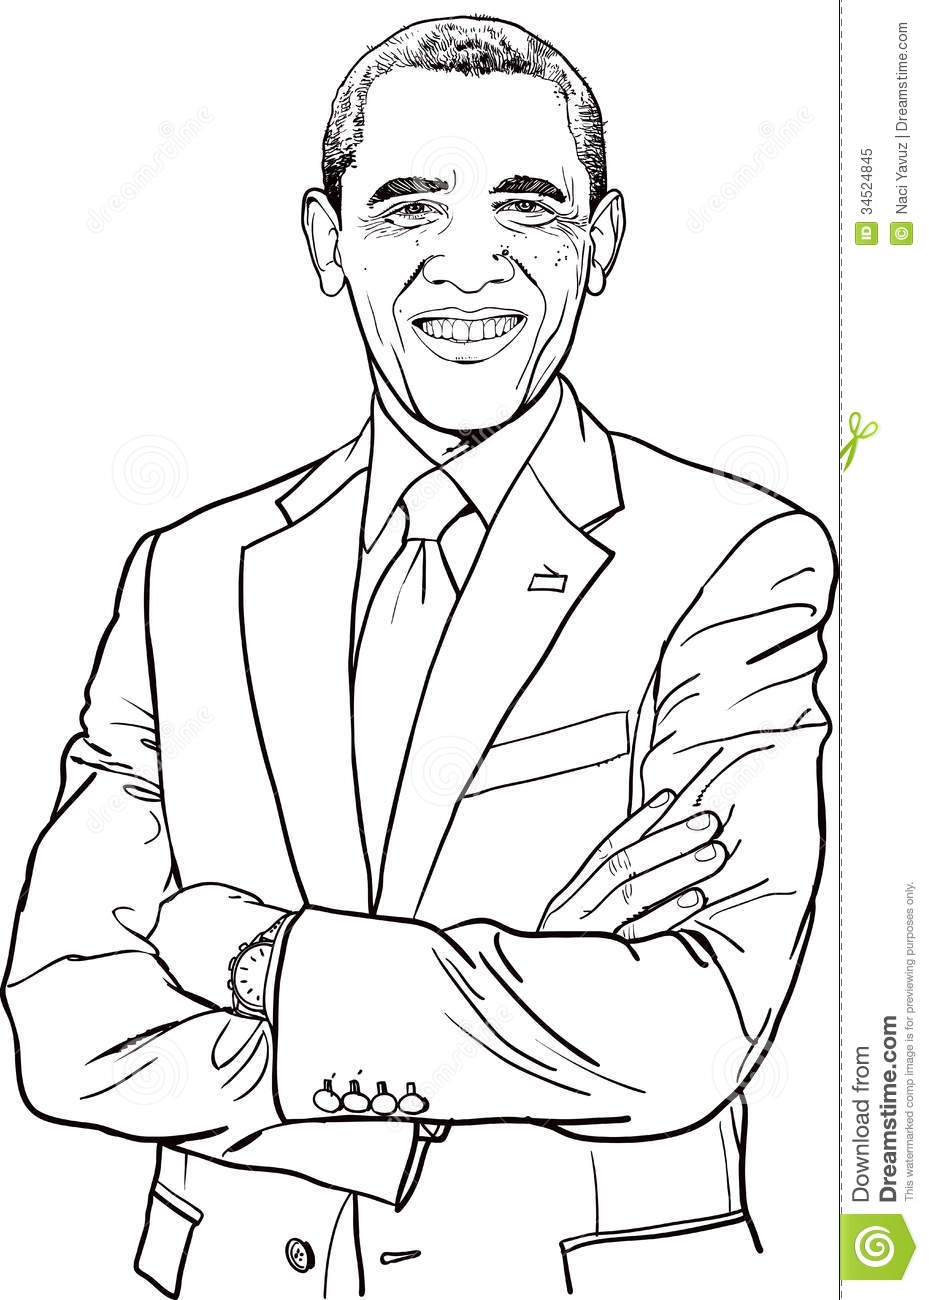 barack obama coloring page - r=african american princess